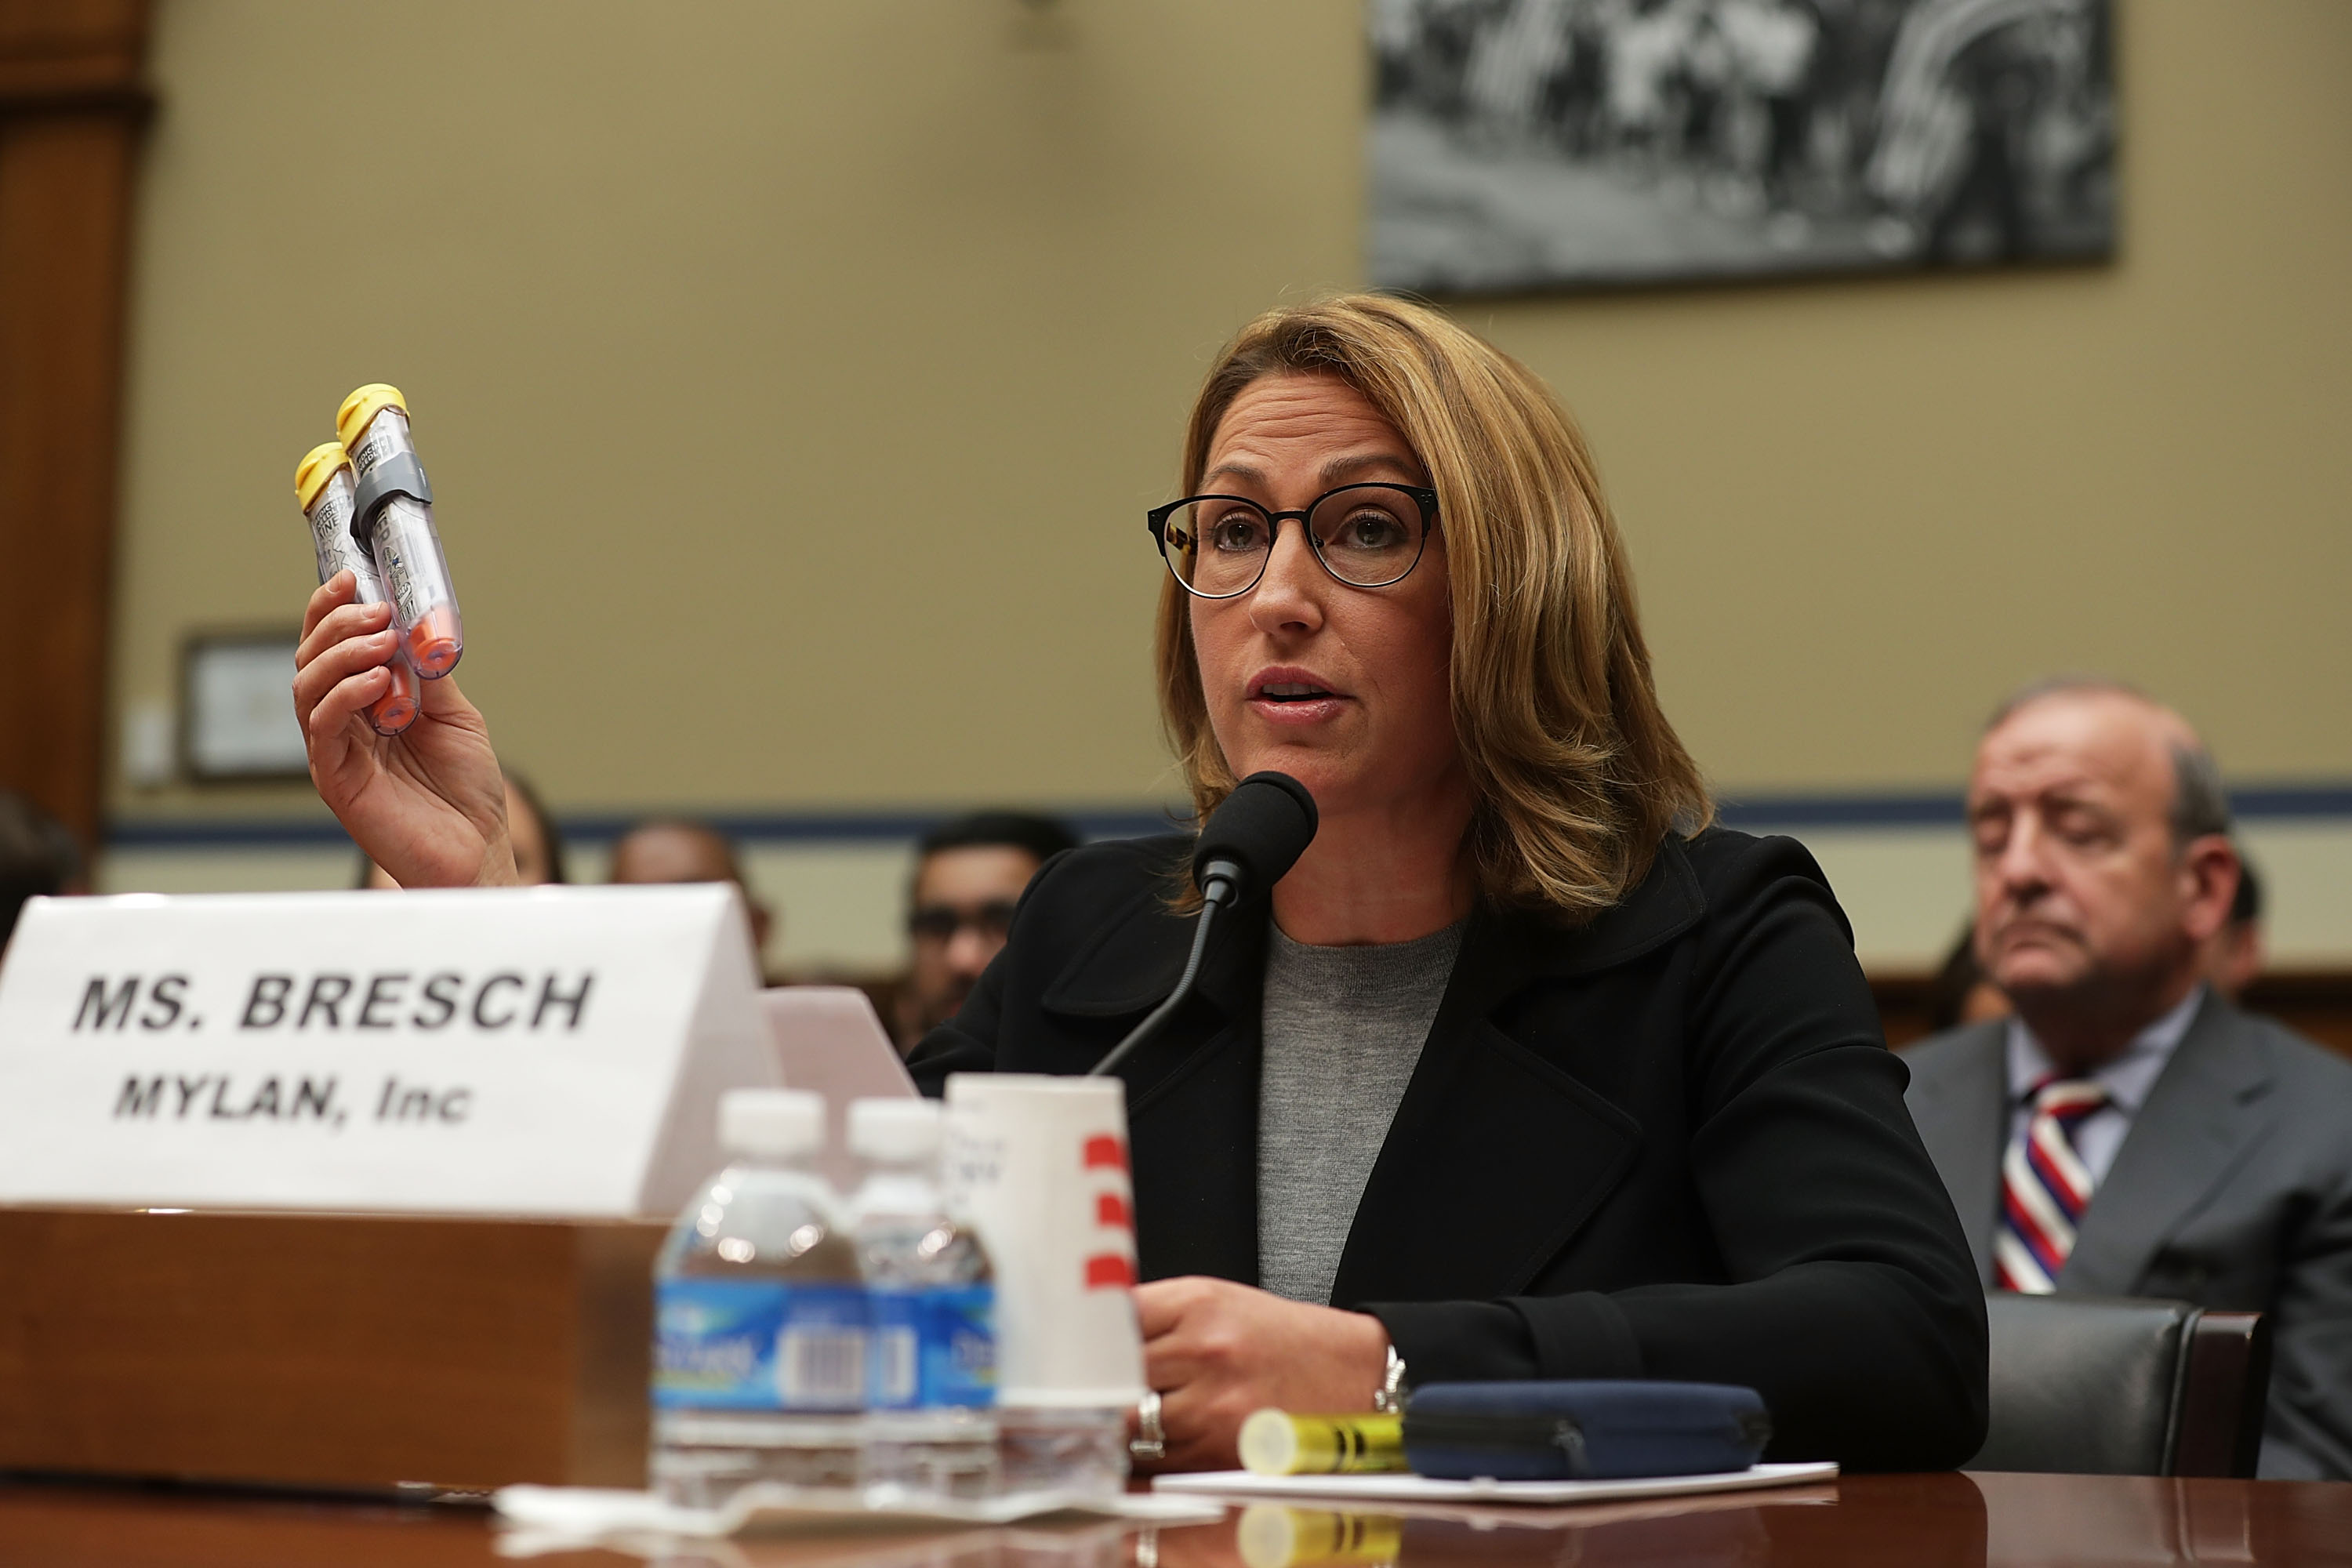 Mylan Inc. CEO Heather Bresch holds up a 2-pack of EpiPen as she testifies during a hearing before the House Oversight and Government Reform Committee September 21, 2016 on Capitol Hill in Washington, DC. (Photo by Alex Wong/Getty Images)